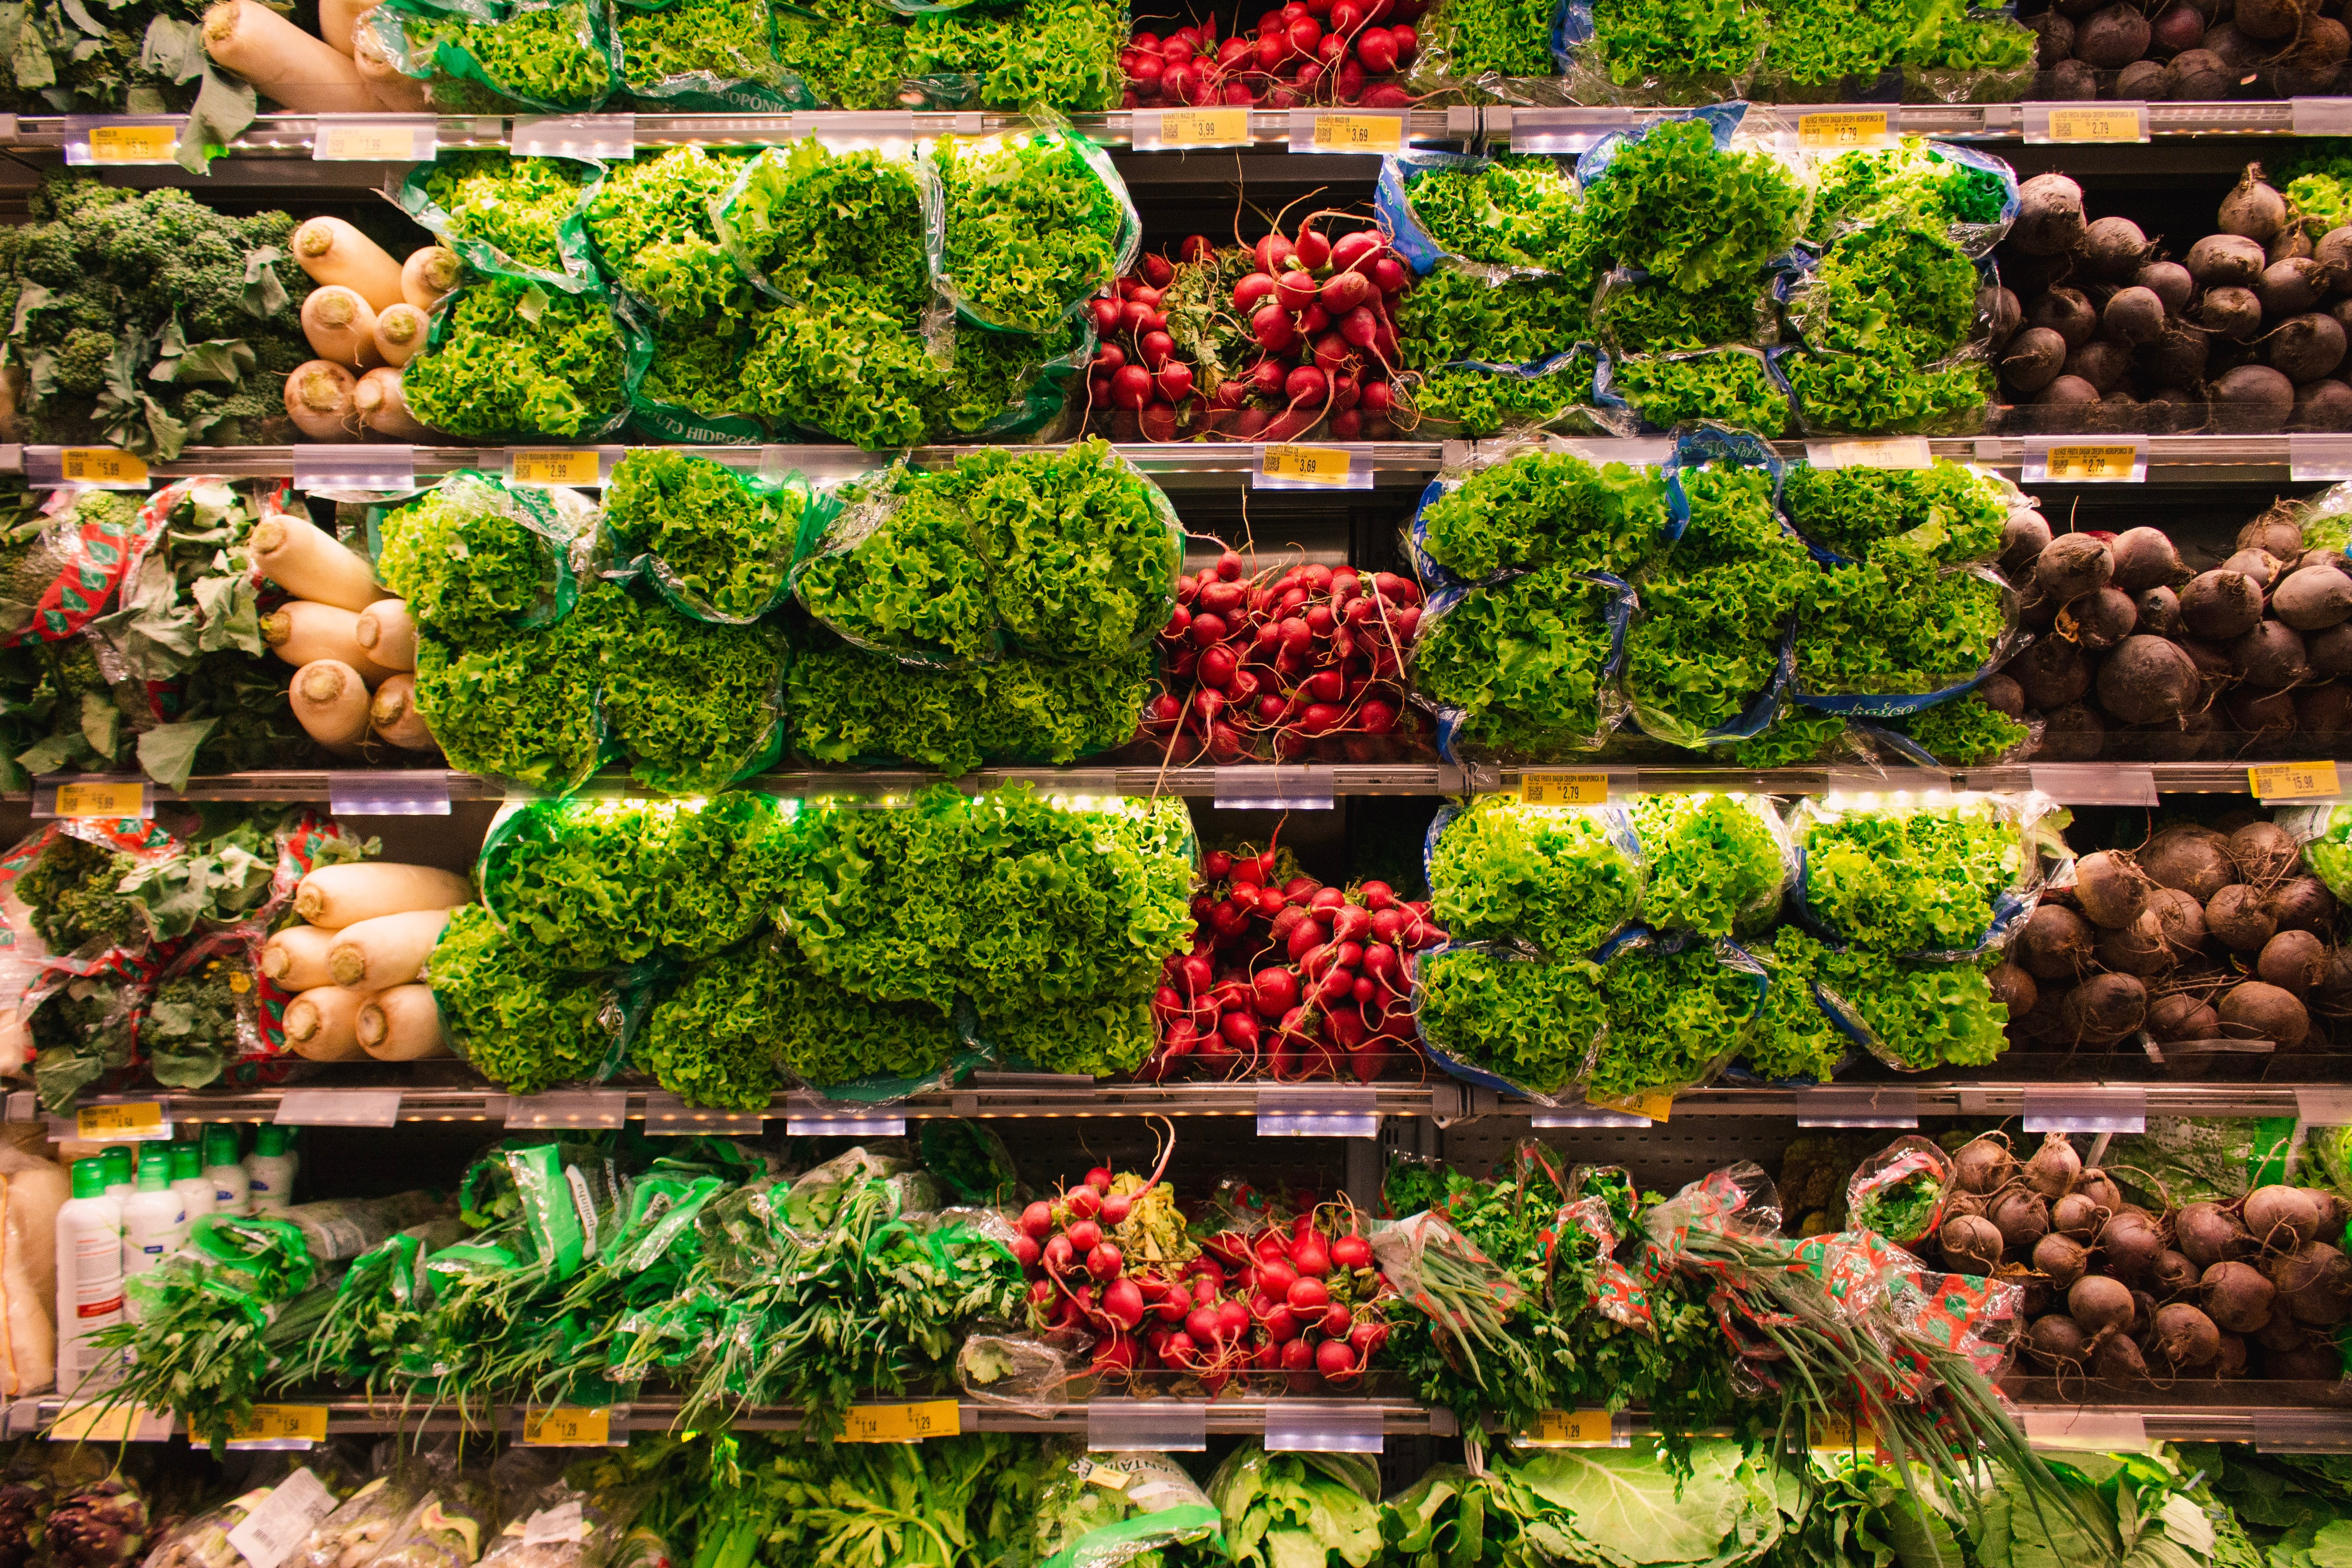 how much should I spend on groceries: shelves of produce at grocery store